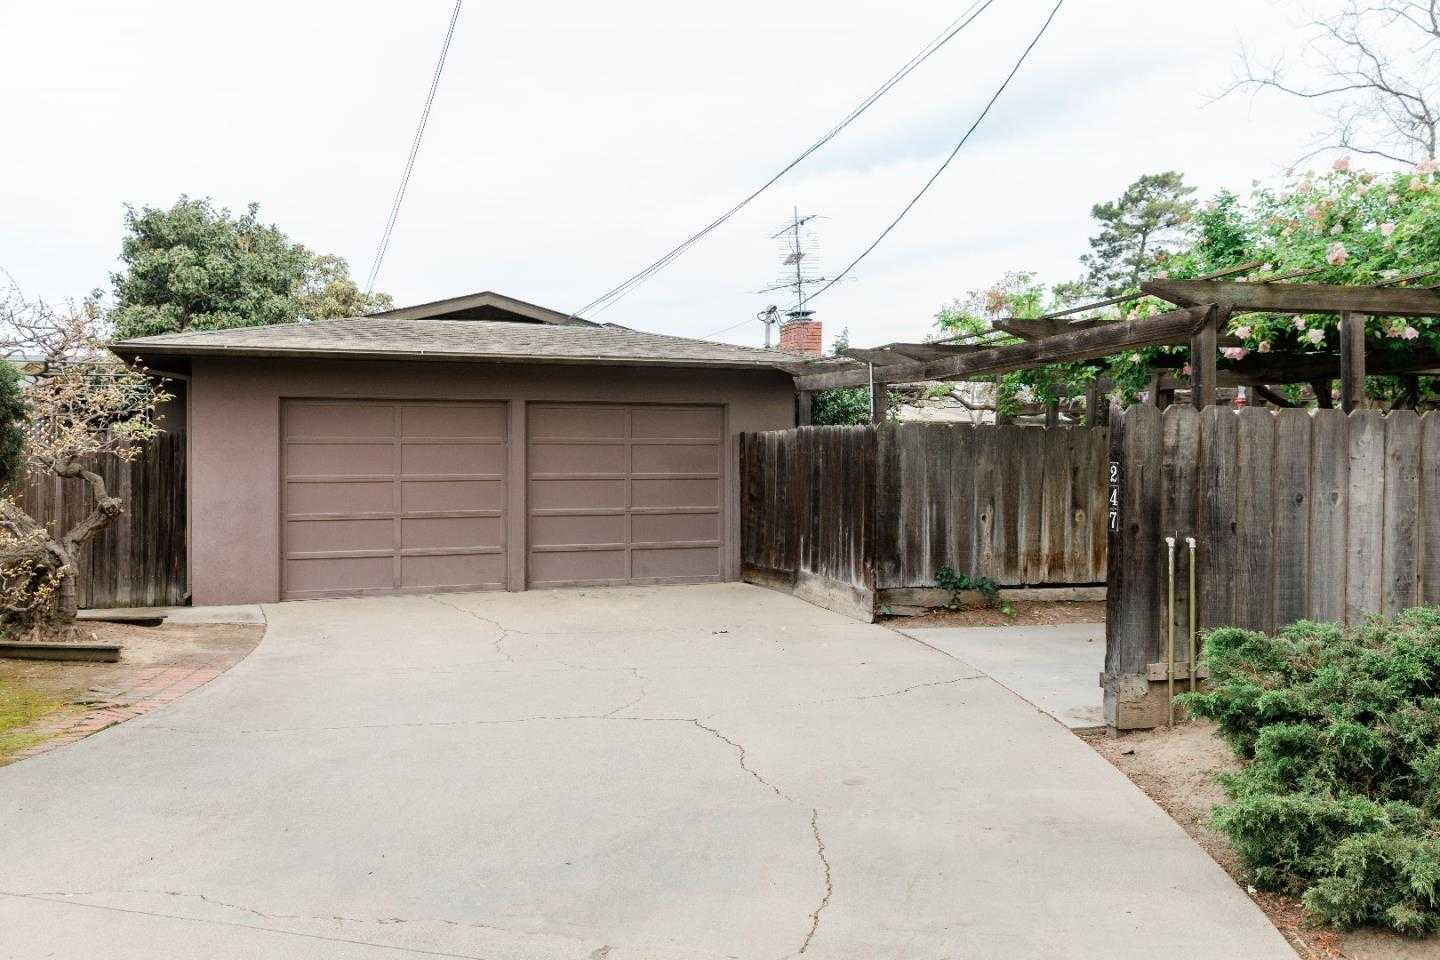 247 2nd ST GONZALES, CA 93926